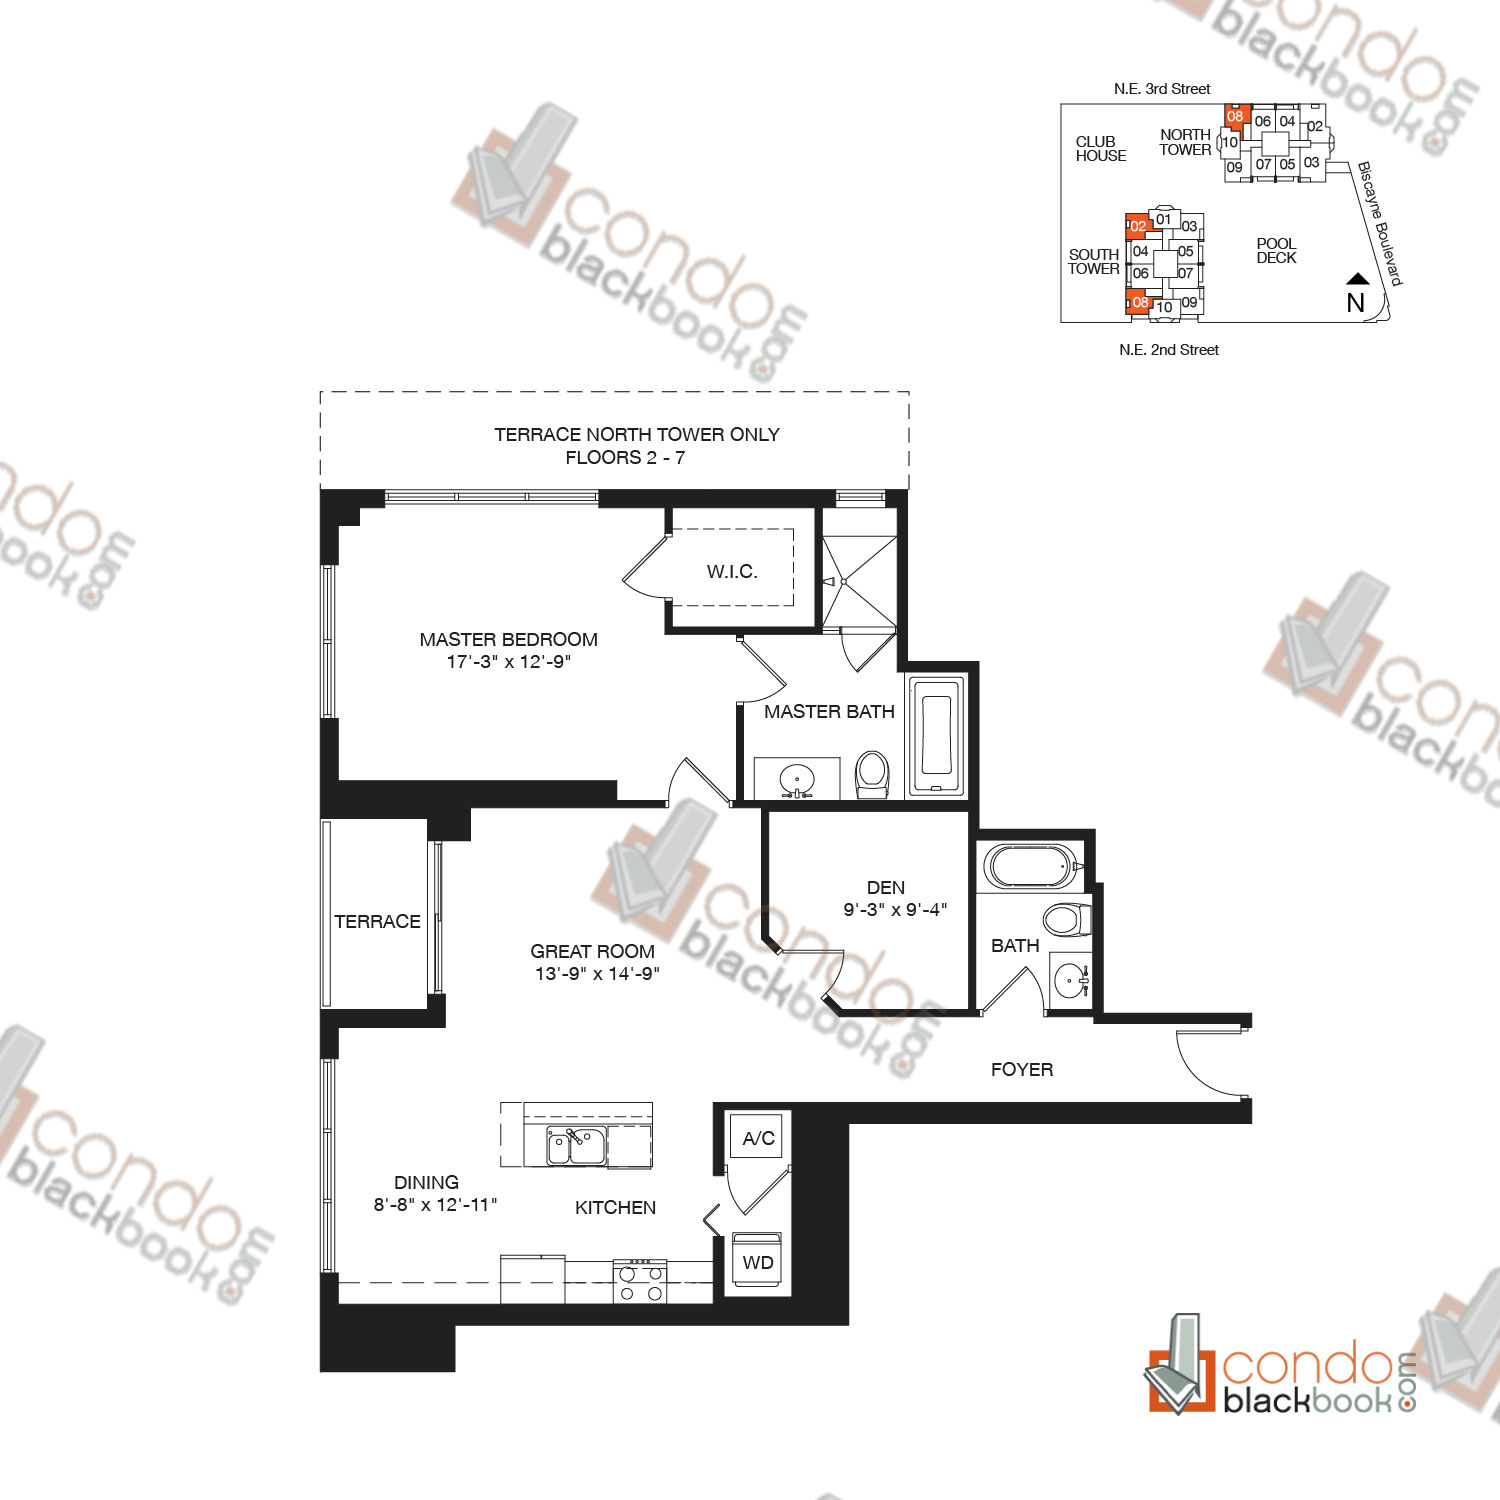 Floor plan for Vizcayne Downtown Miami Miami, model RESIDENCE 2, line 02, 08, 1/2+DEN bedrooms, 1,146 sq ft